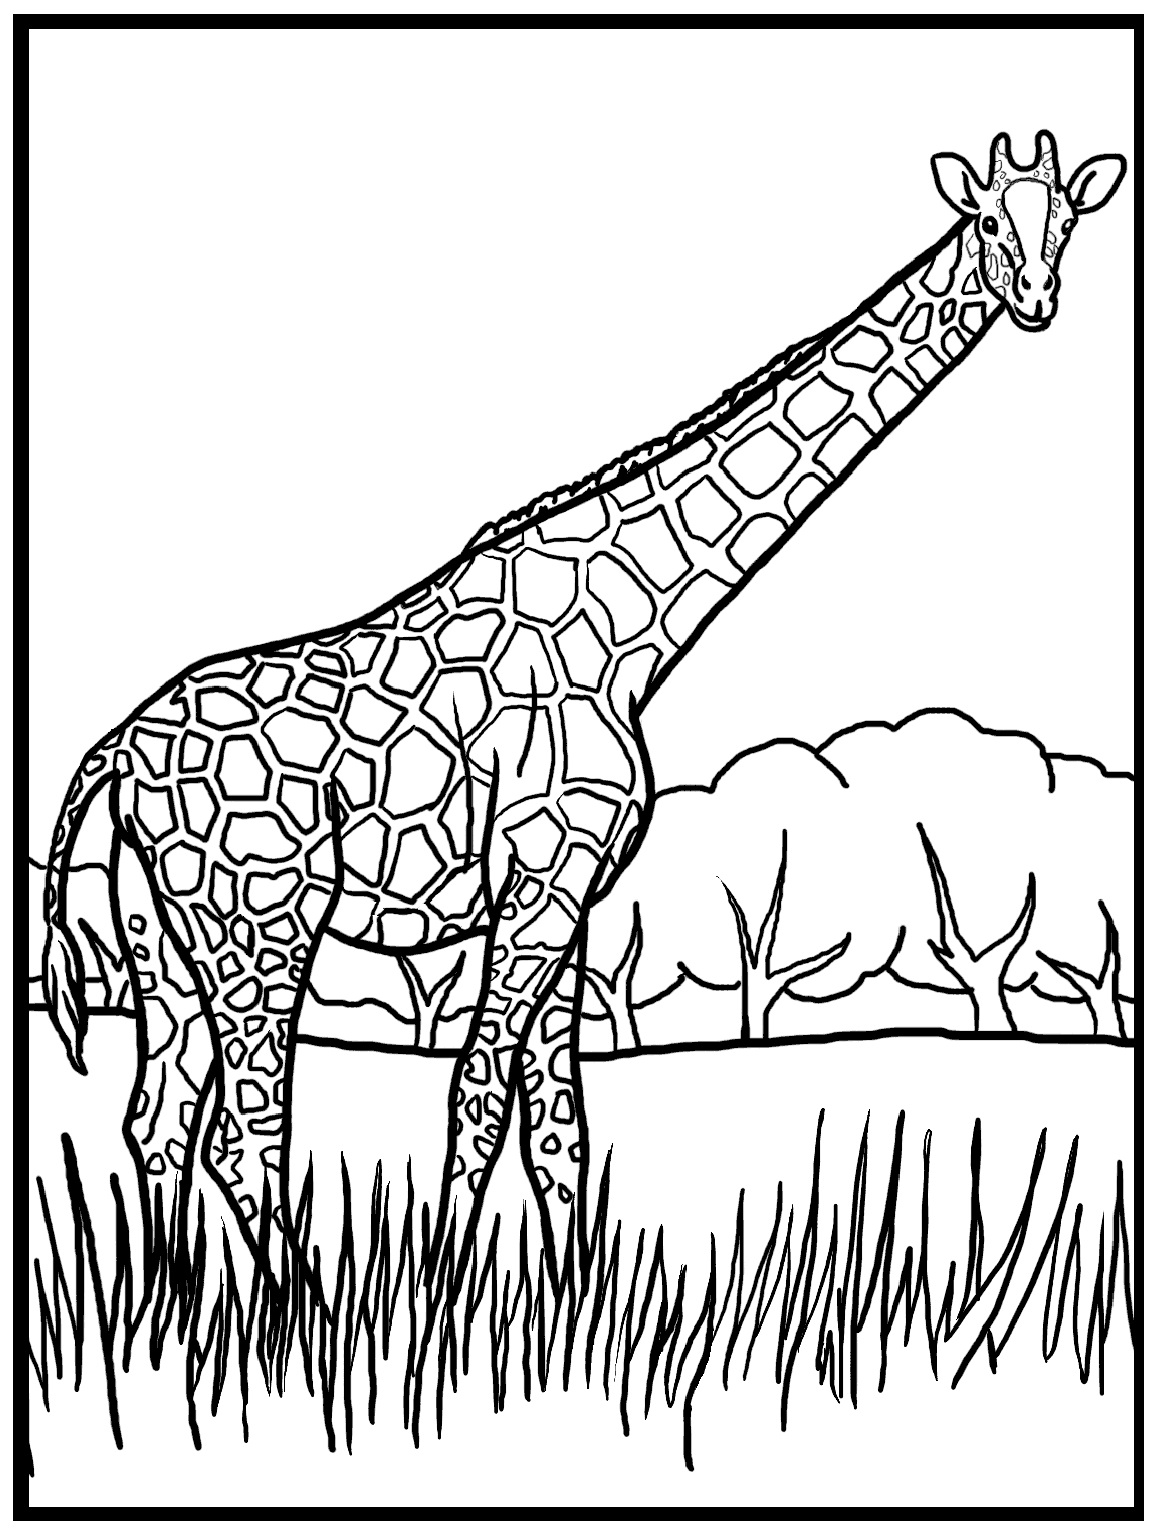 1160x1532 Giraffe Color Page Somebody Free Coloring Pages Coloring